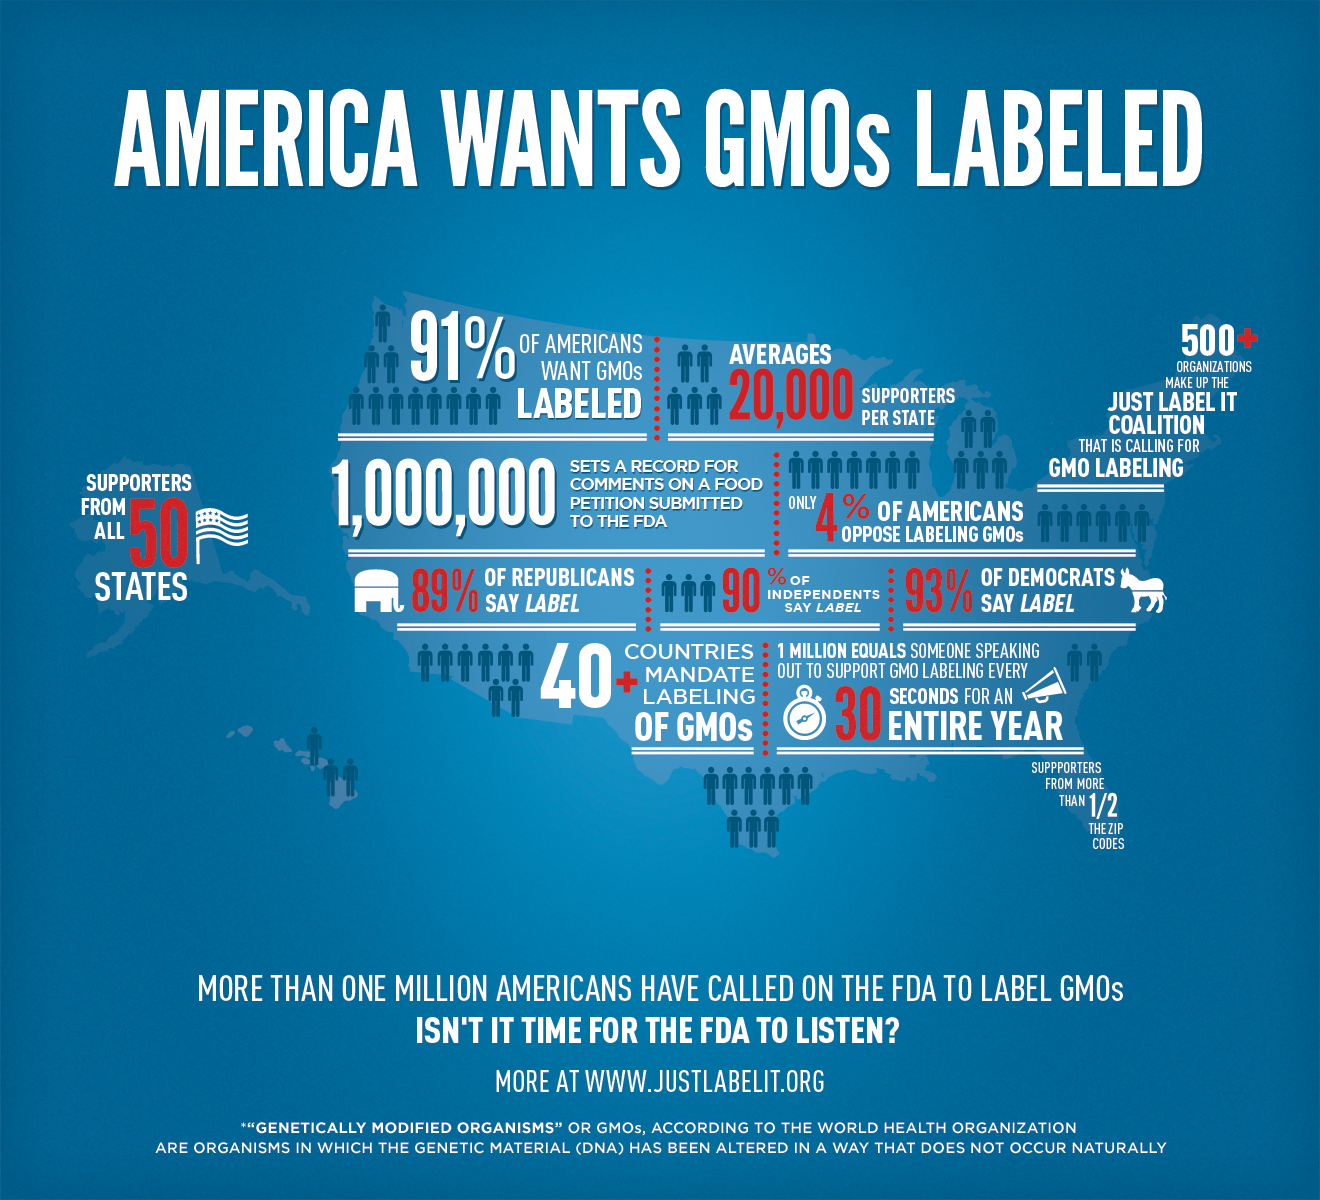 http://visual.ly/america-wants-gmos-labeled- Real Food Girl: Unmodified talks about GMOs